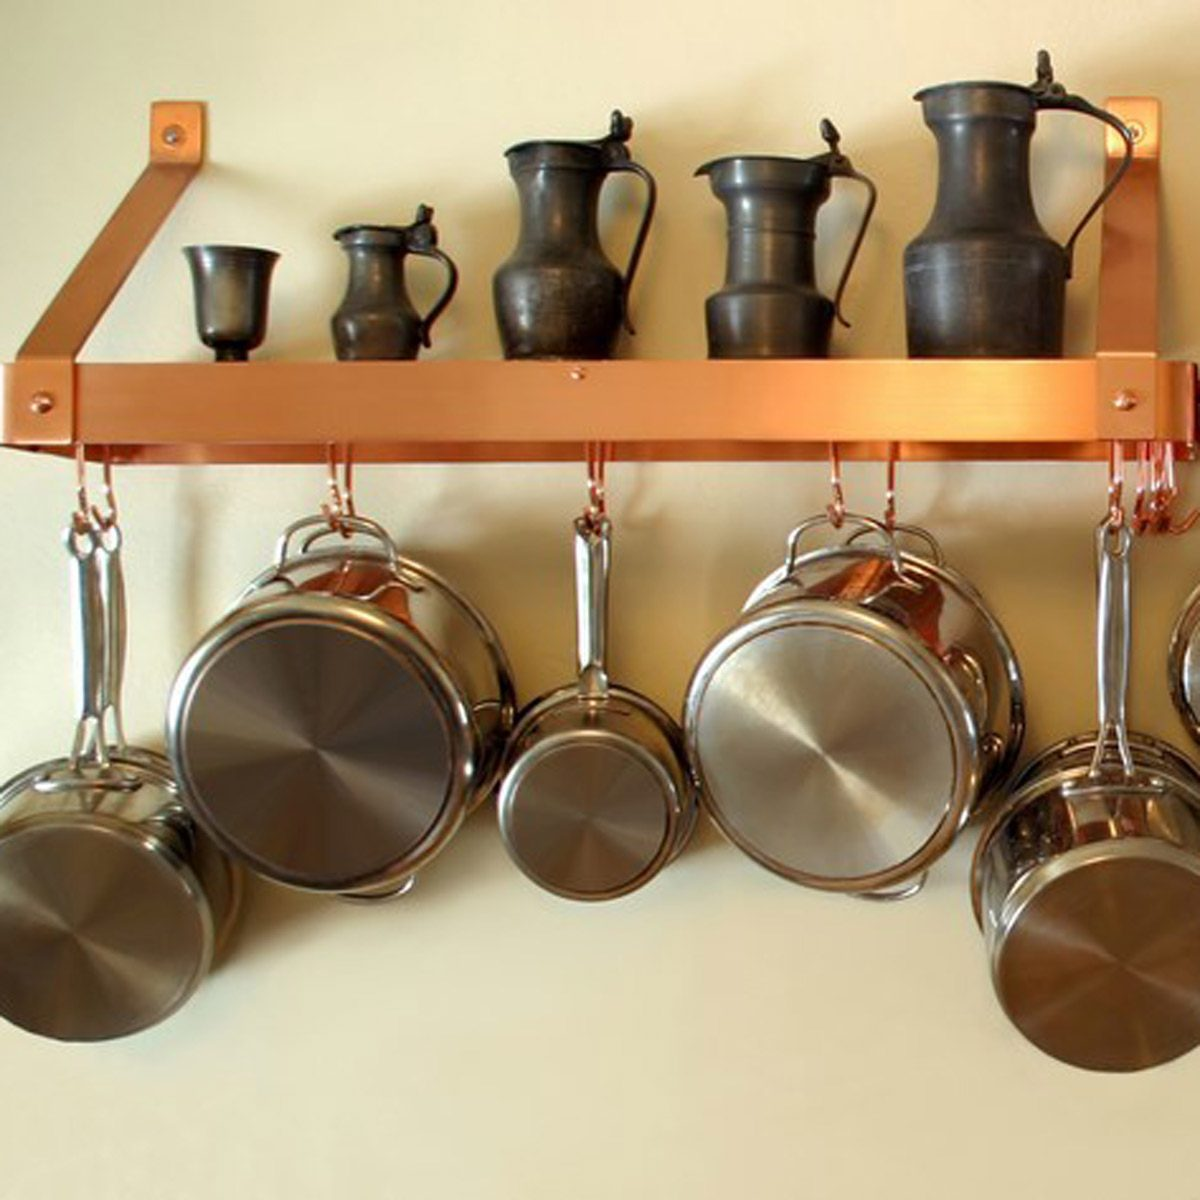 Hang pots and pans under a shelf or cupboard